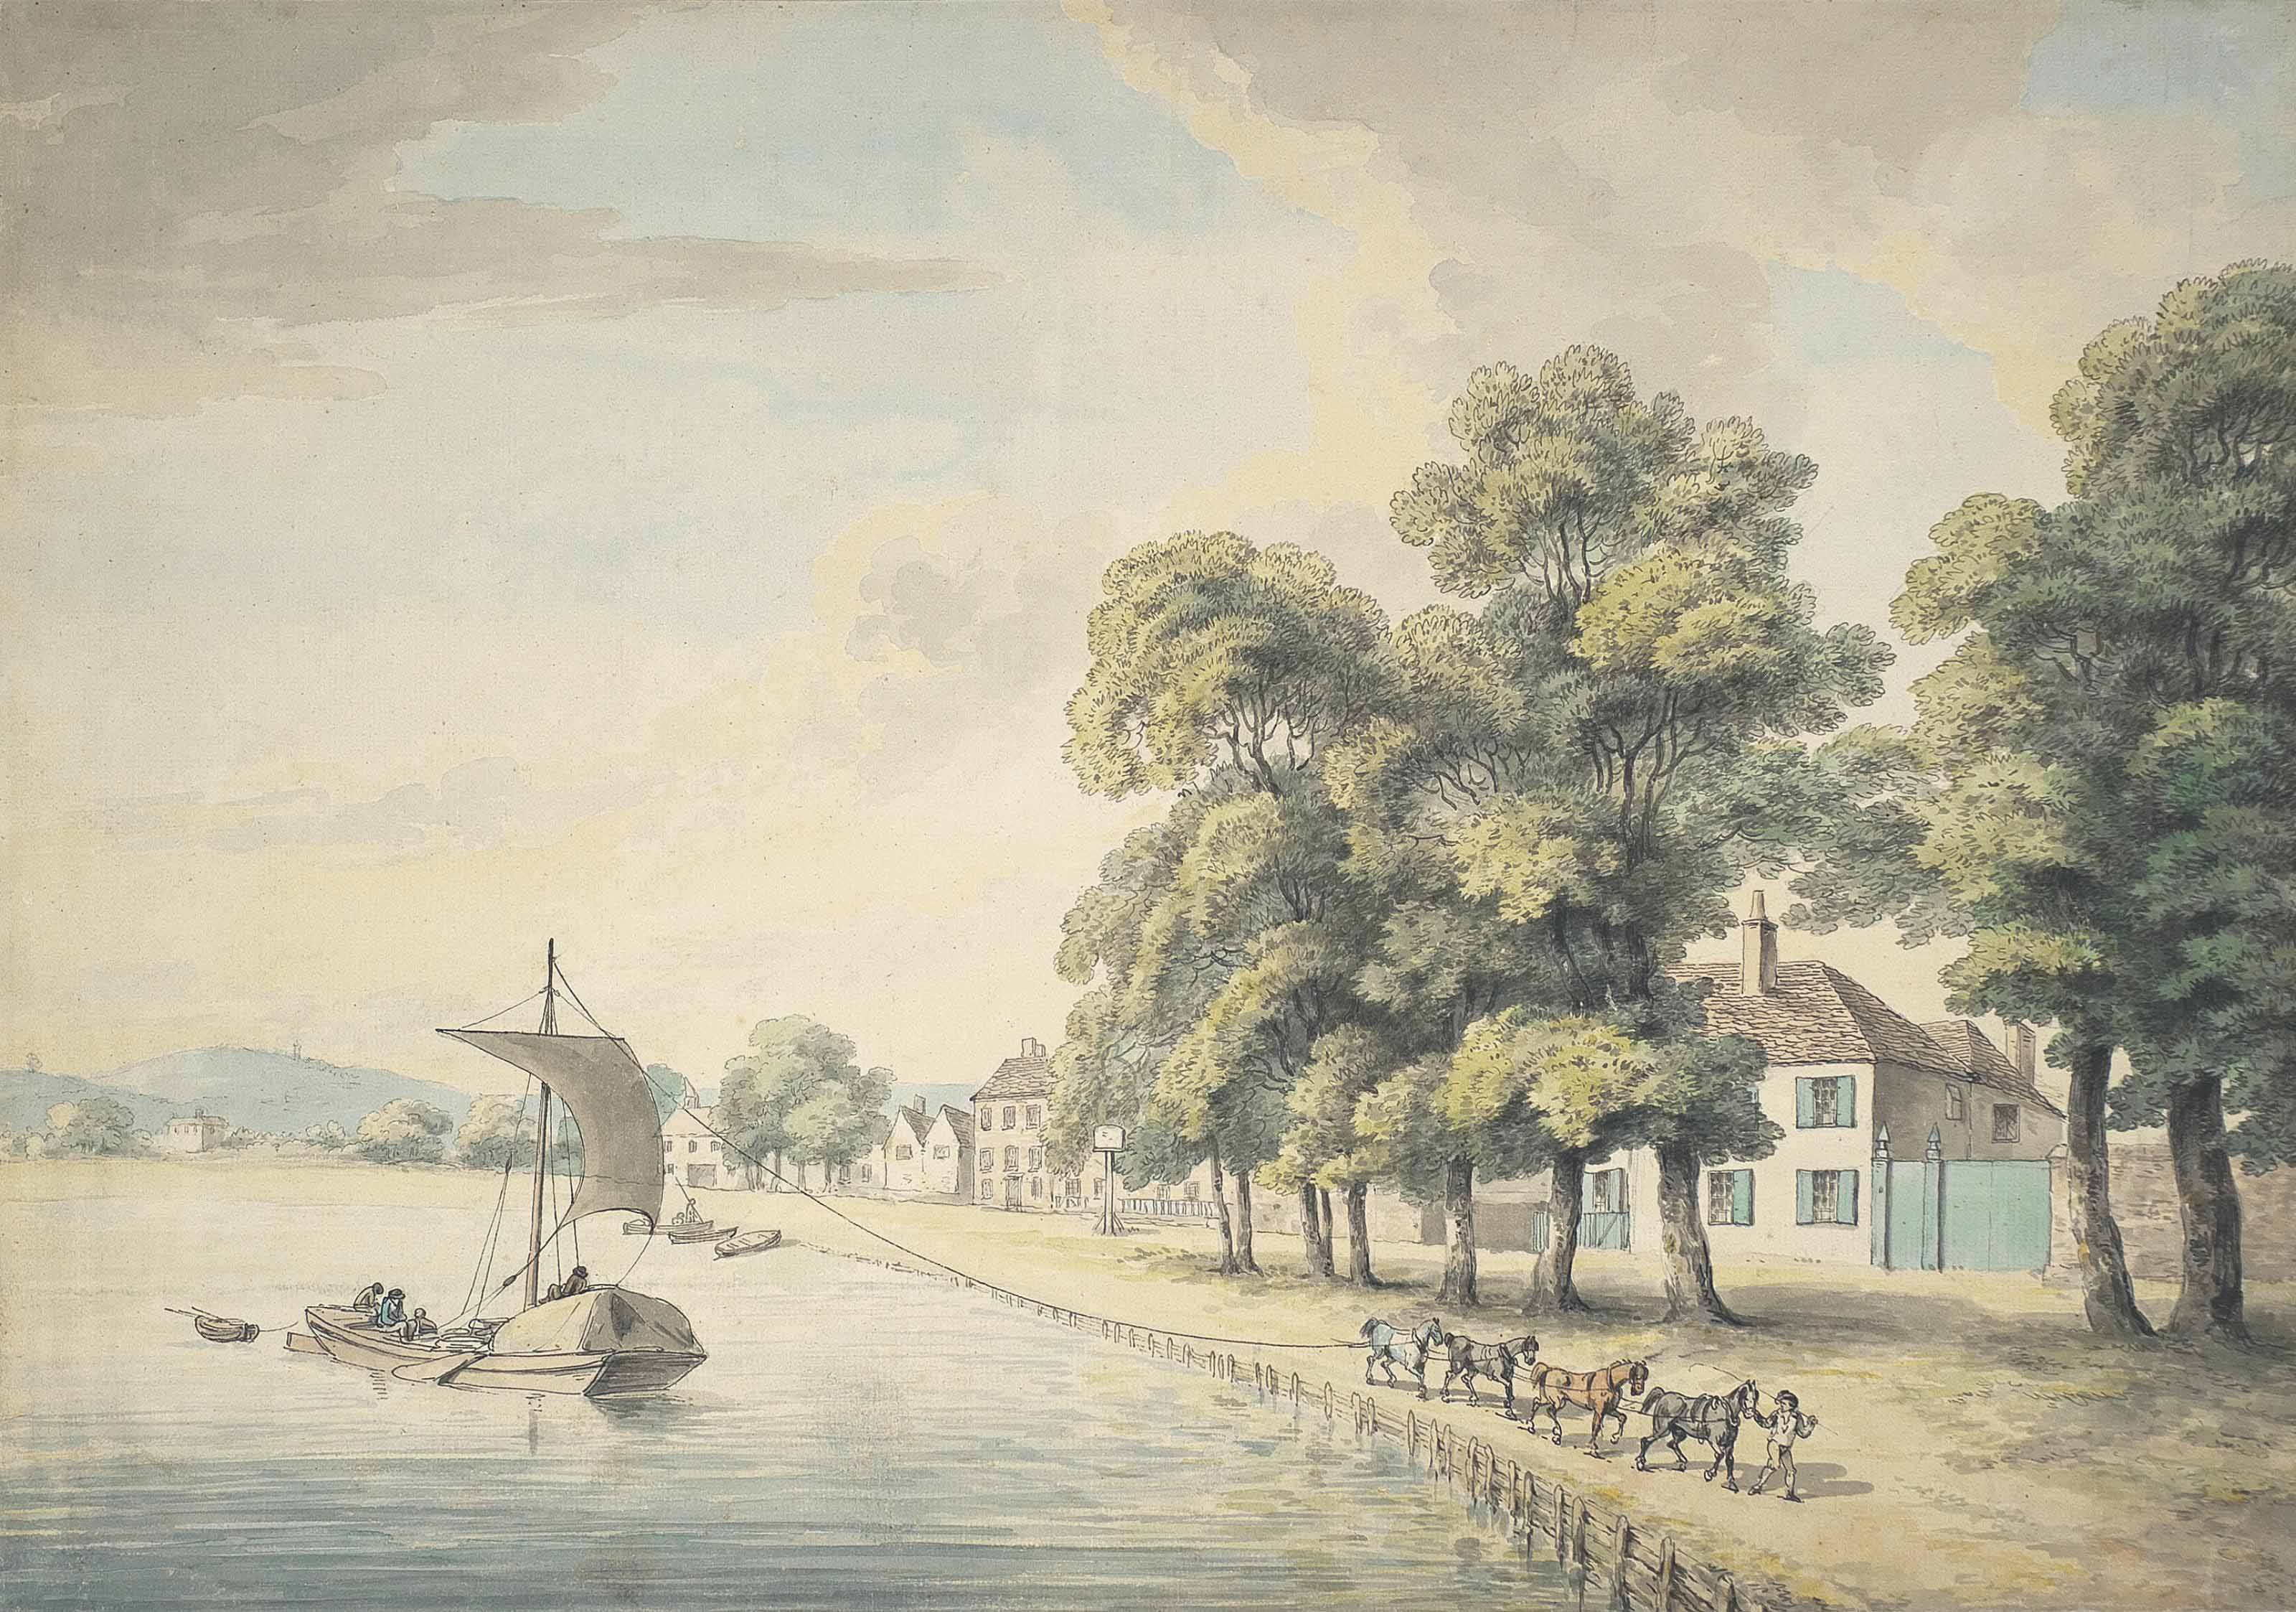 A figure leading horses pulling a barge along a river, possibly Hammersmith Mall, London